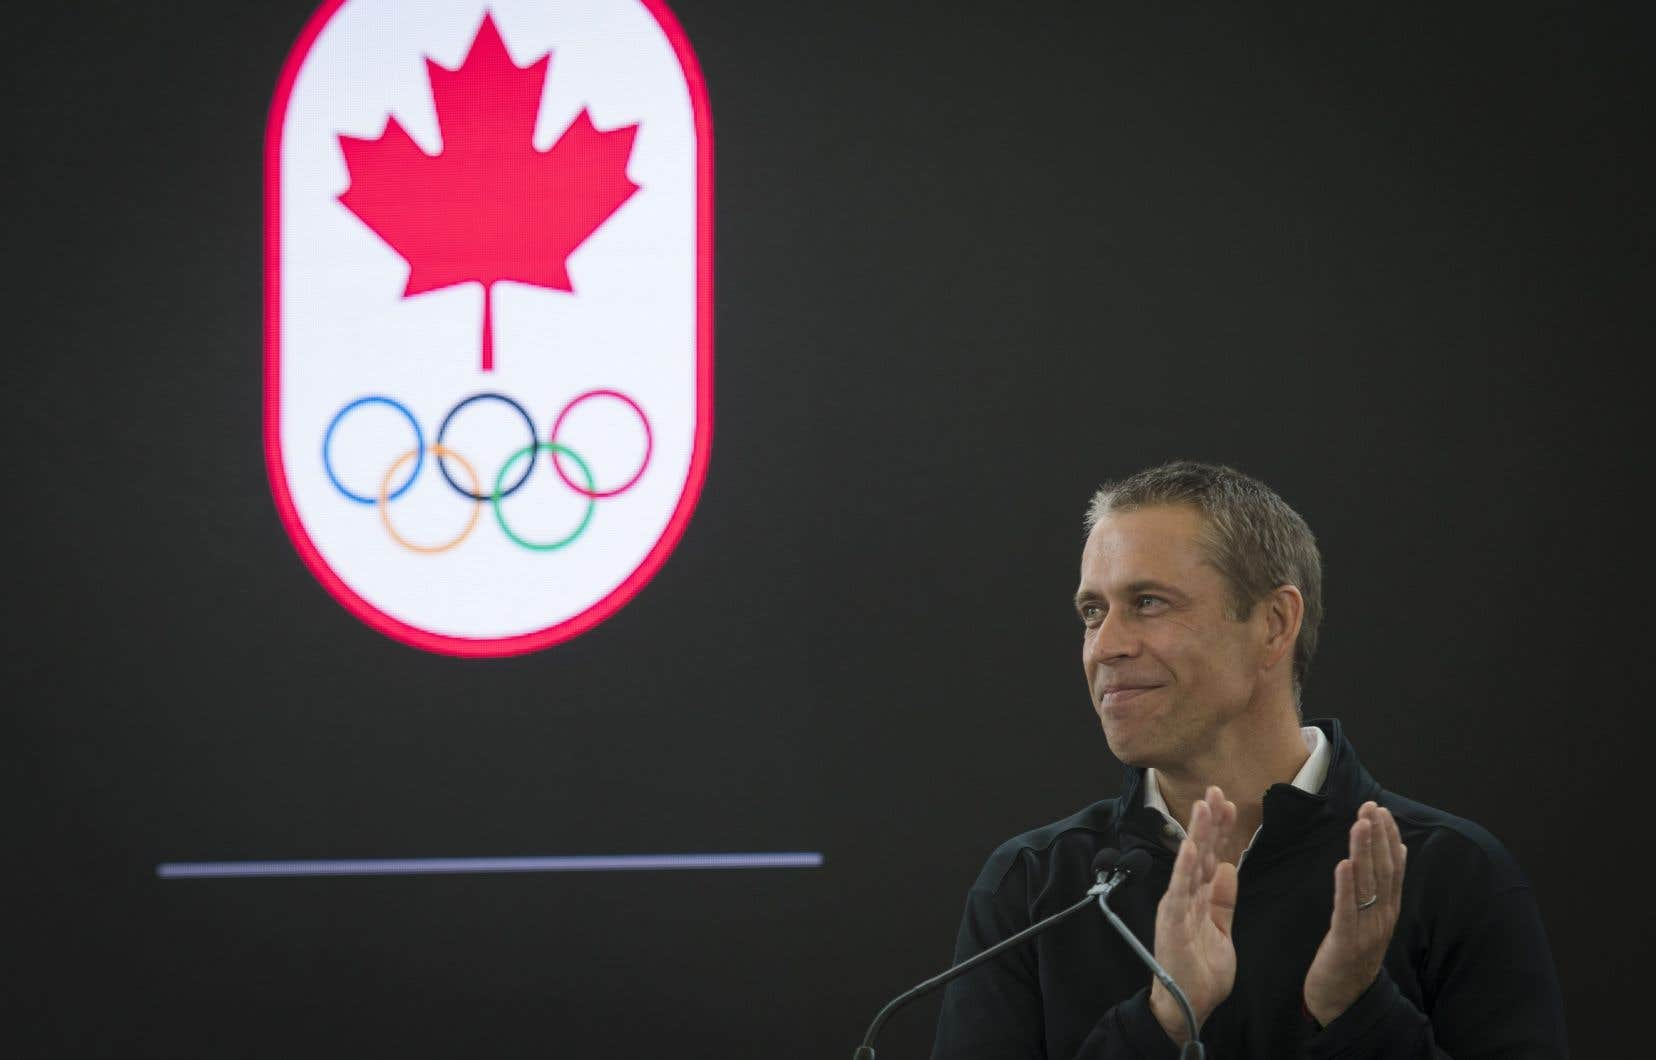 Le chef de la direction du Comité olympique canadien, David Shoemaker